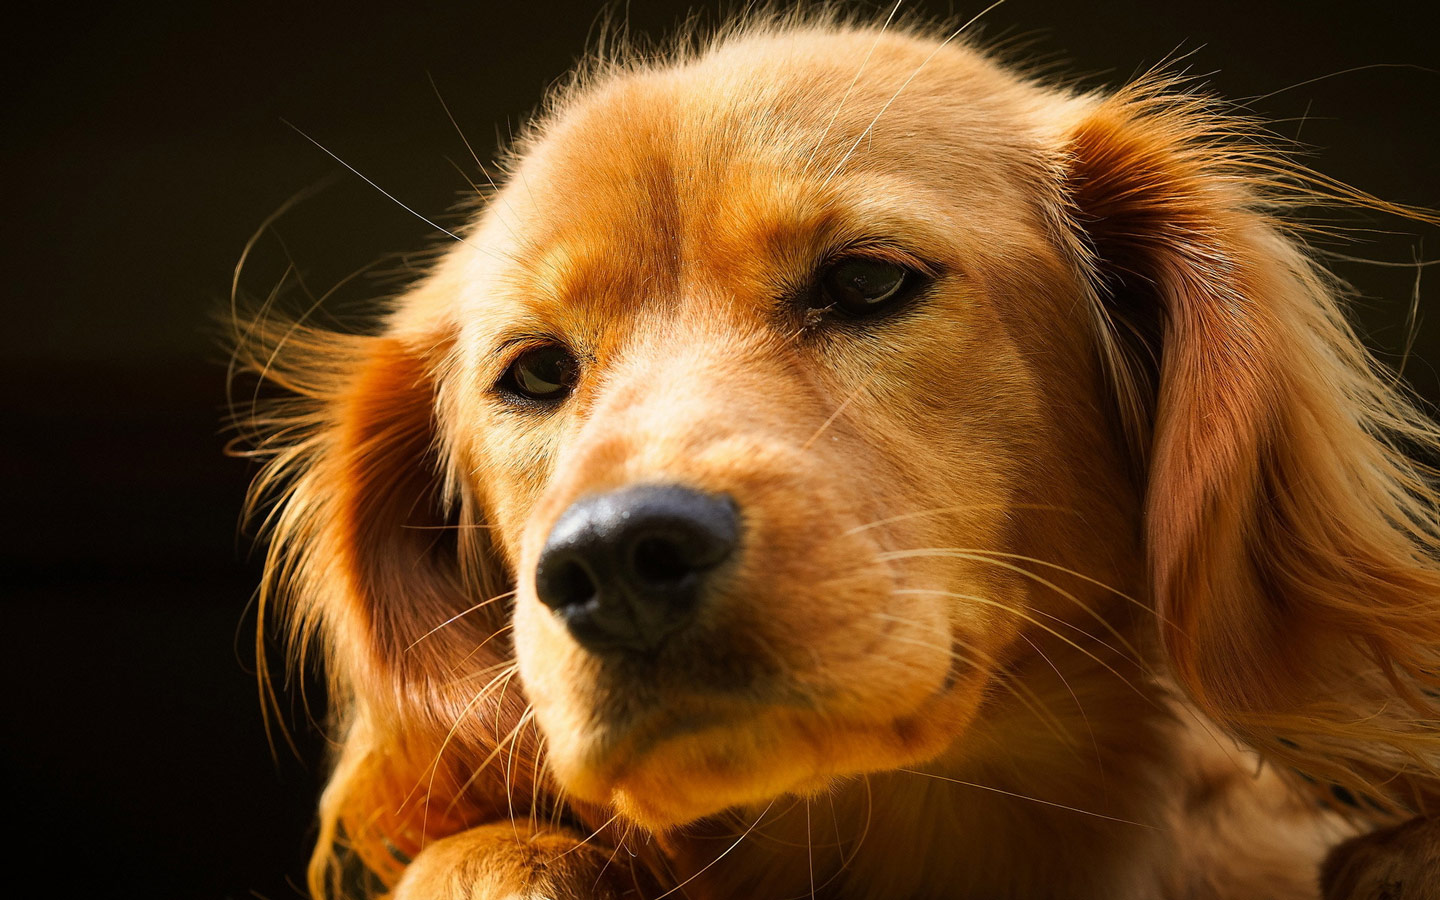 Cute Dogs Wallpapers For Desktop Puppy Backgrounds 1440x900